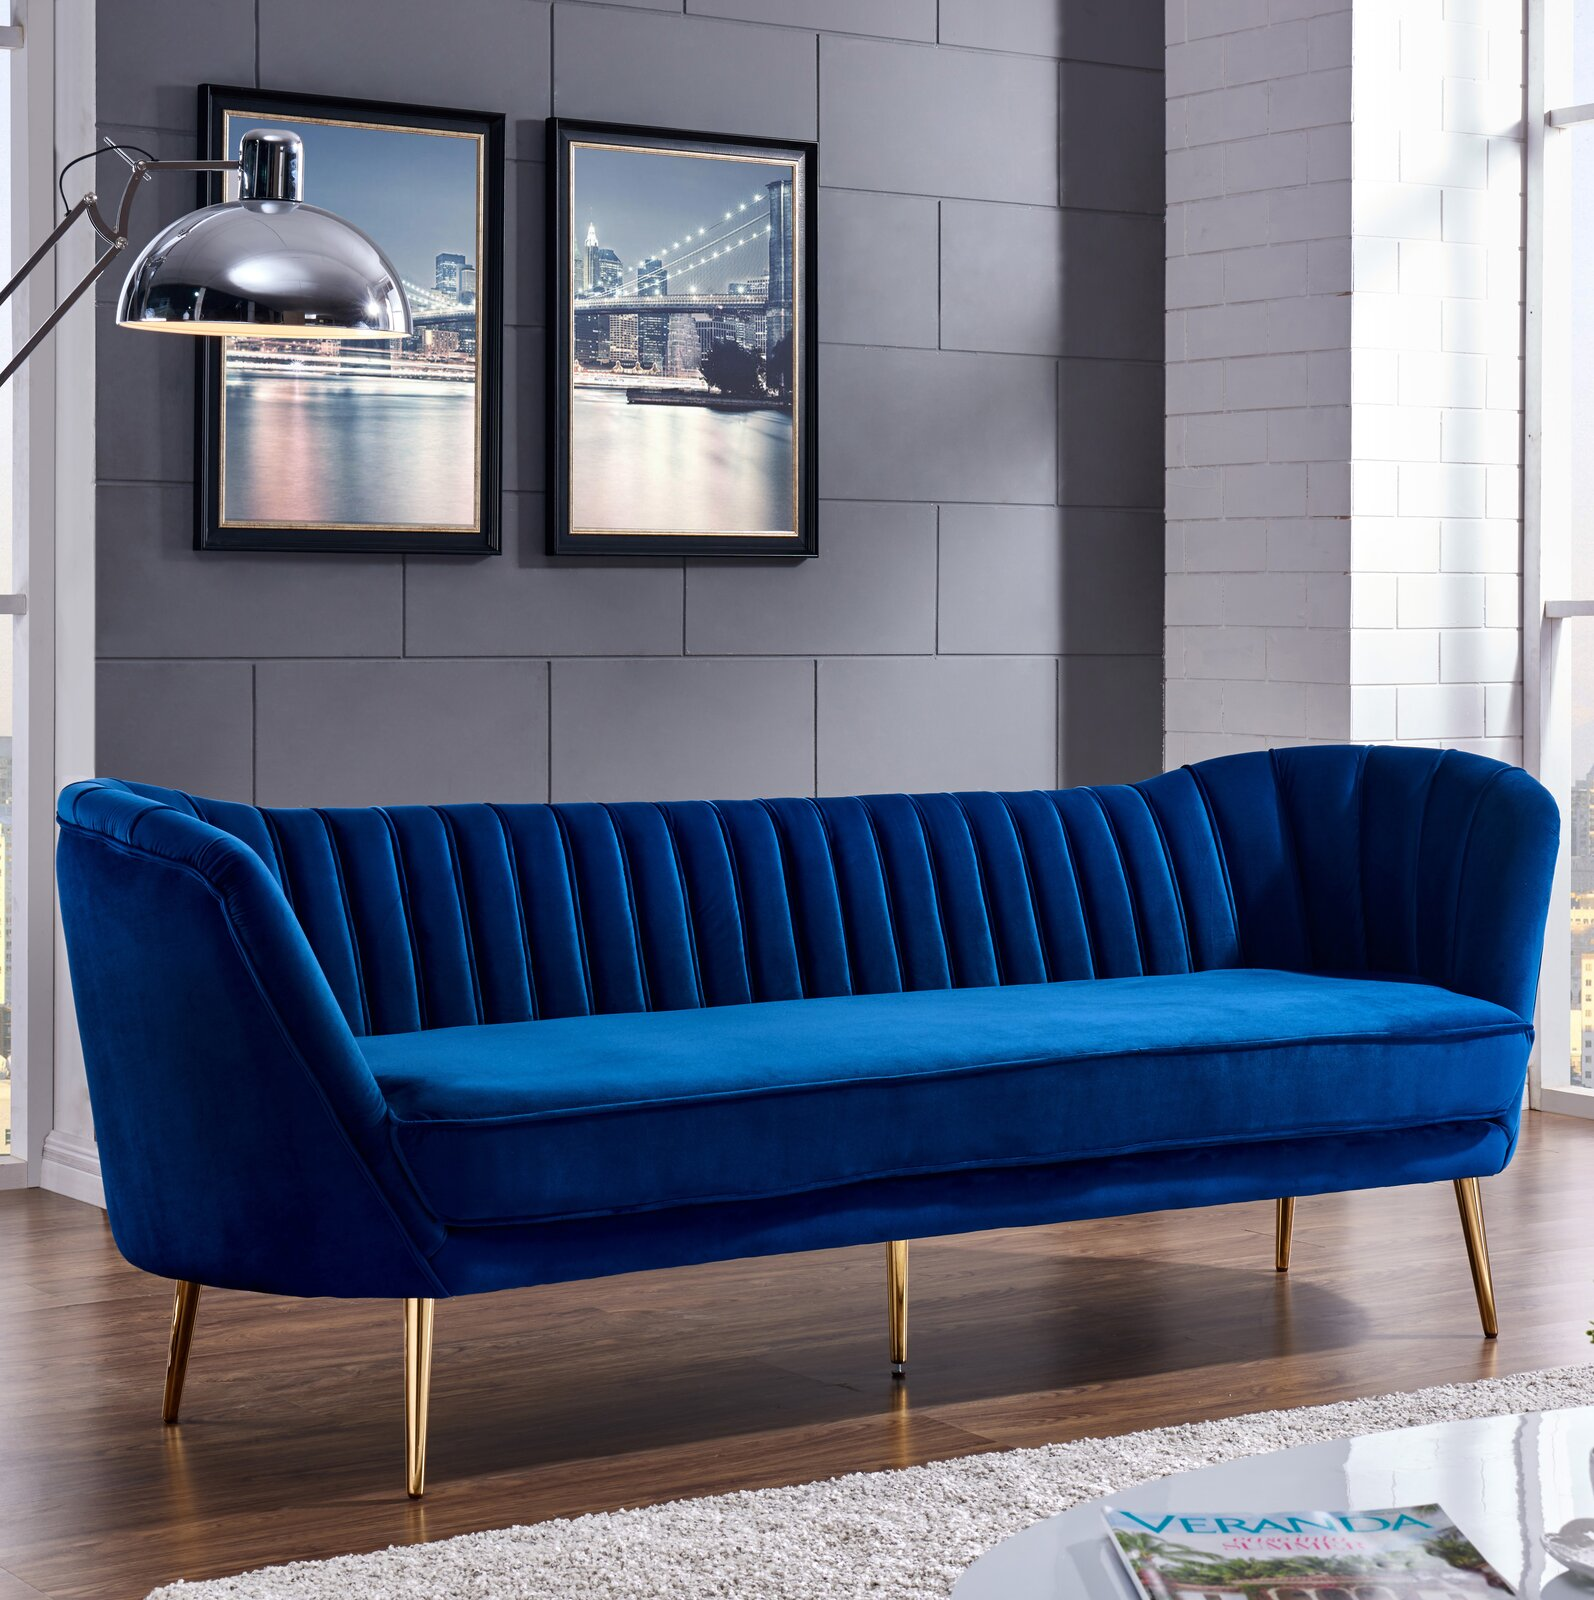 25 Best Sofa Trends In 2021 To Watch Out For   Décor Aid